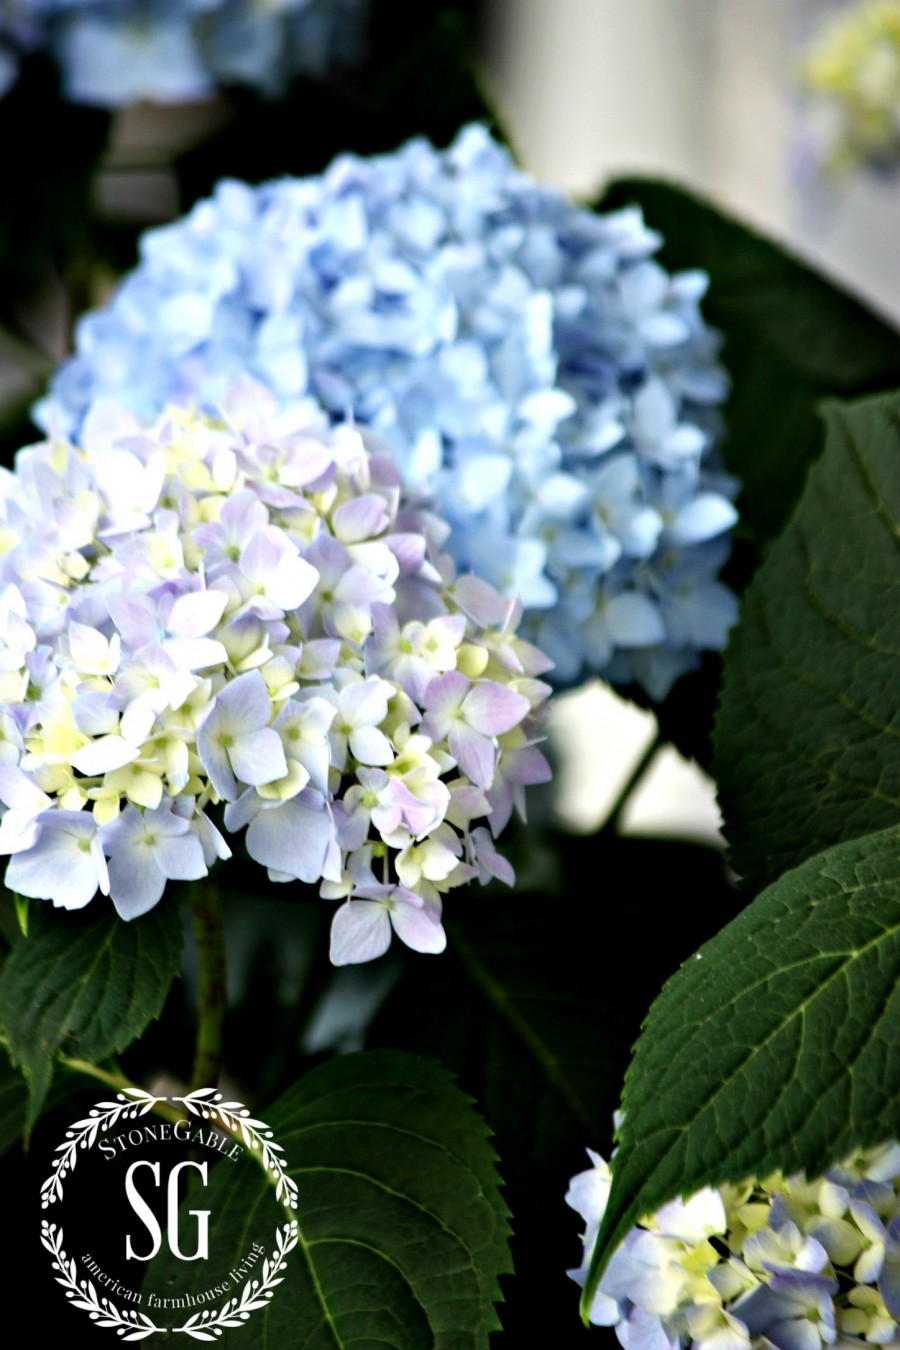 PLANTING HYDRANGEAS IN POT AND URNS-hydrangeas-blooms-stonegableblog.com